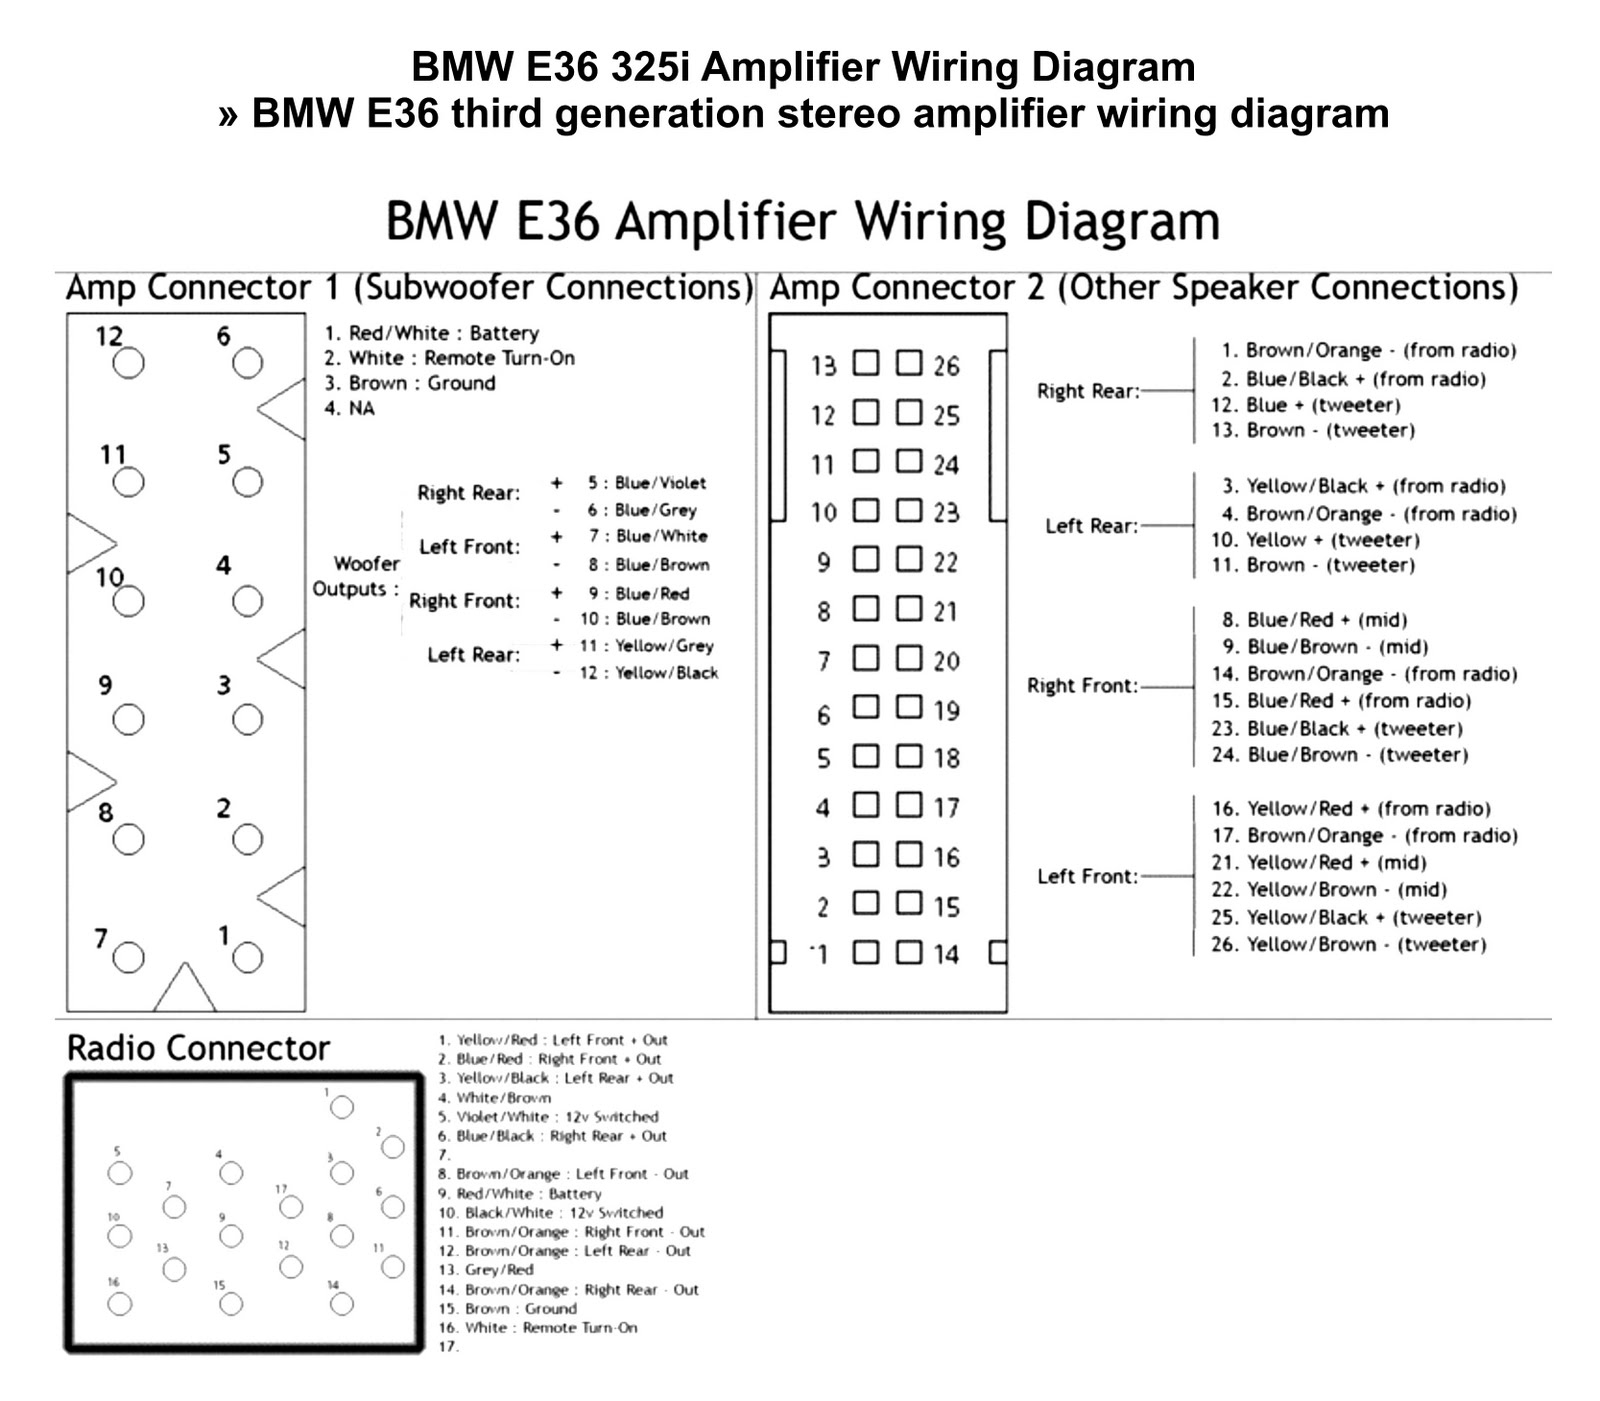 1996 Bmw Z3 Radio Wiring Diagram The Portal And Forum Of 2002 Suburban Speaker Harness 1999 Stereo Third Level Rh 6 9 11 Jacobwinterstein Com Solenoid Electrical 1997